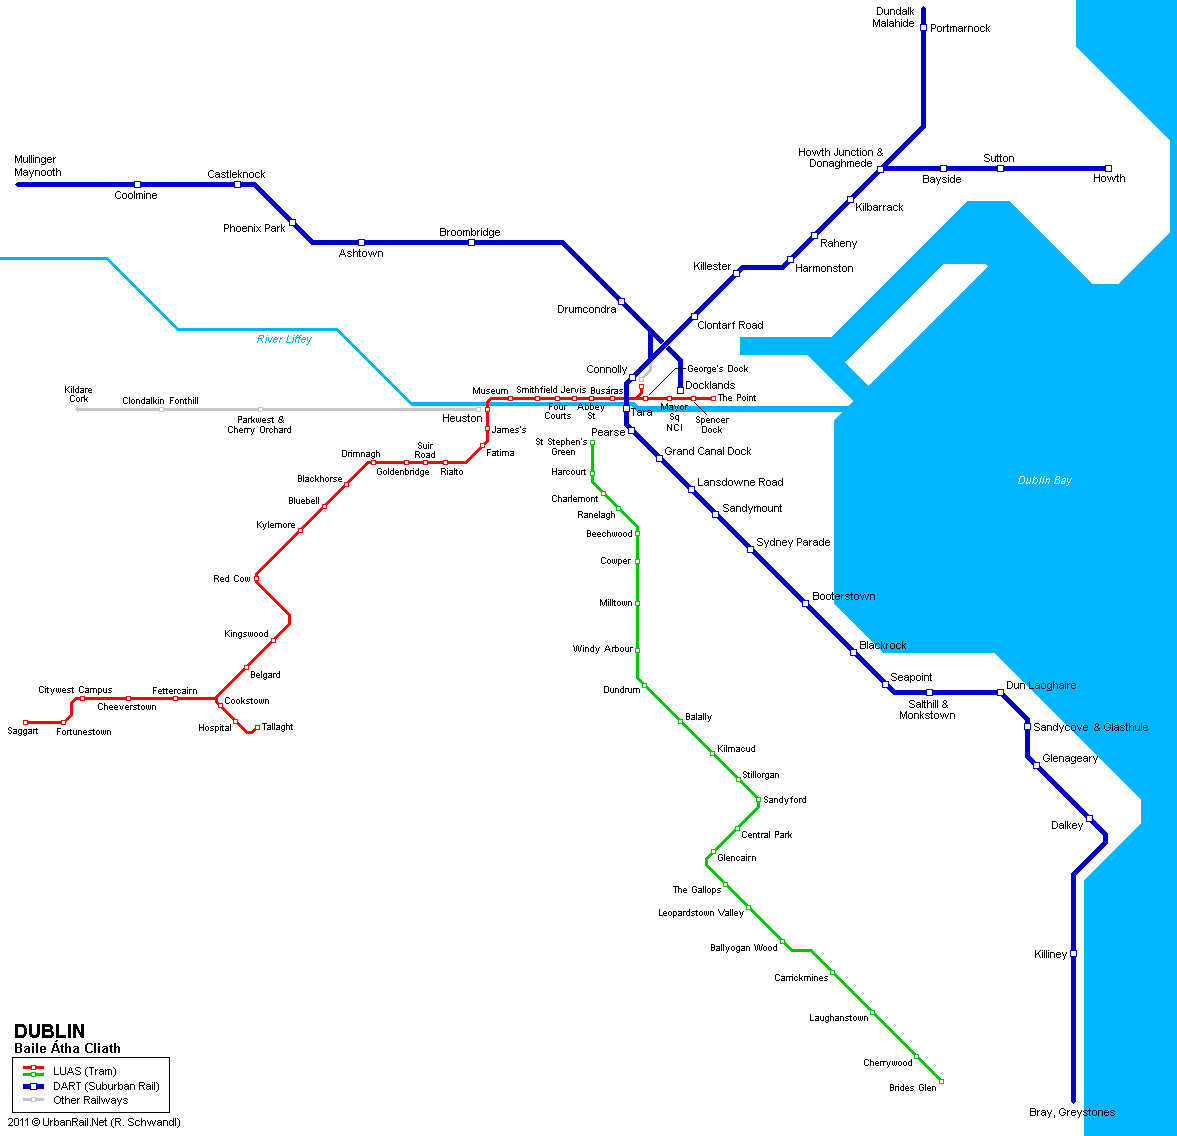 Tram map of Dublin